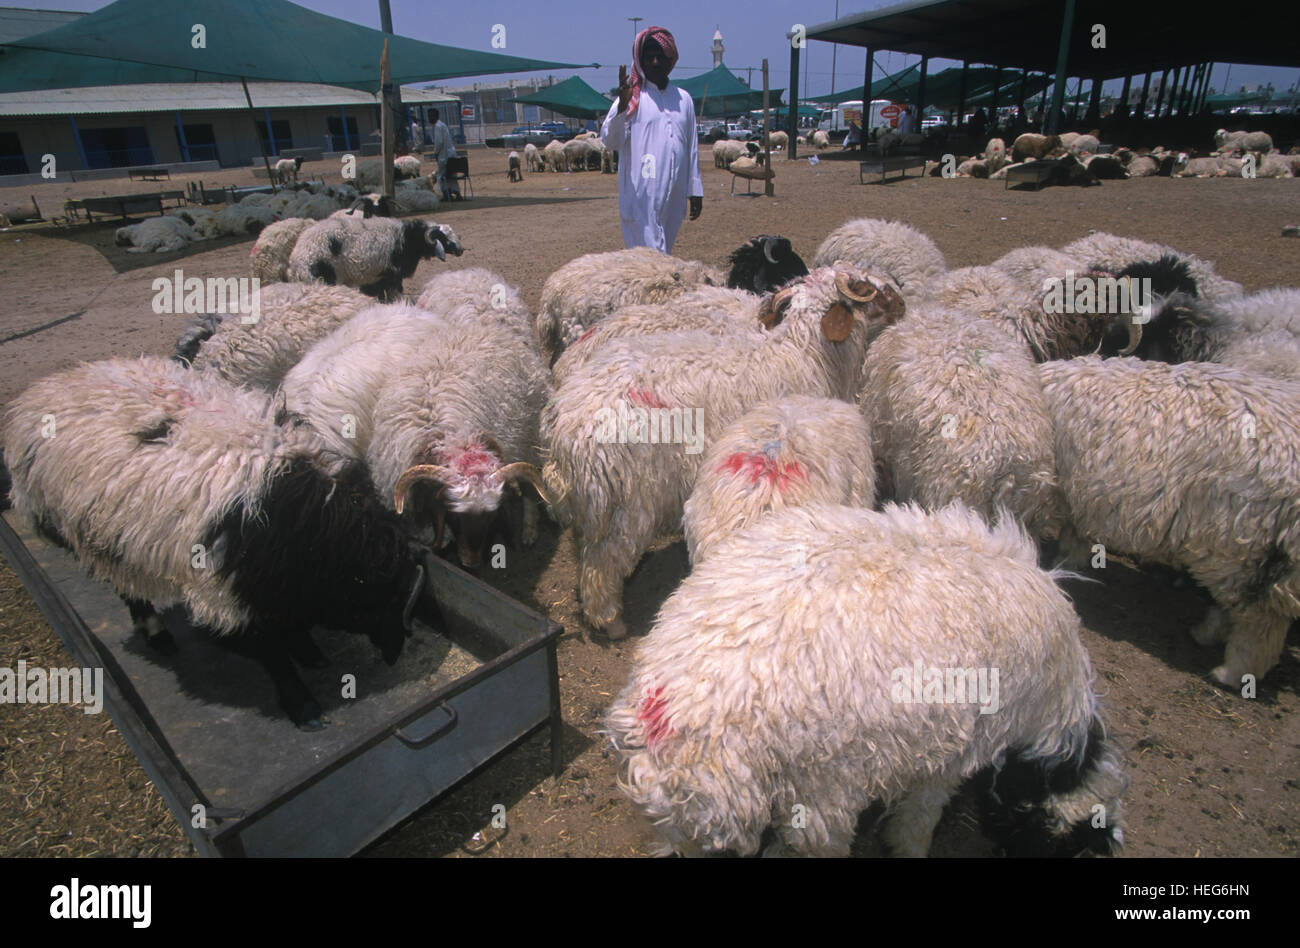 Sheep for sale on animal market at Kuwait City  Seller